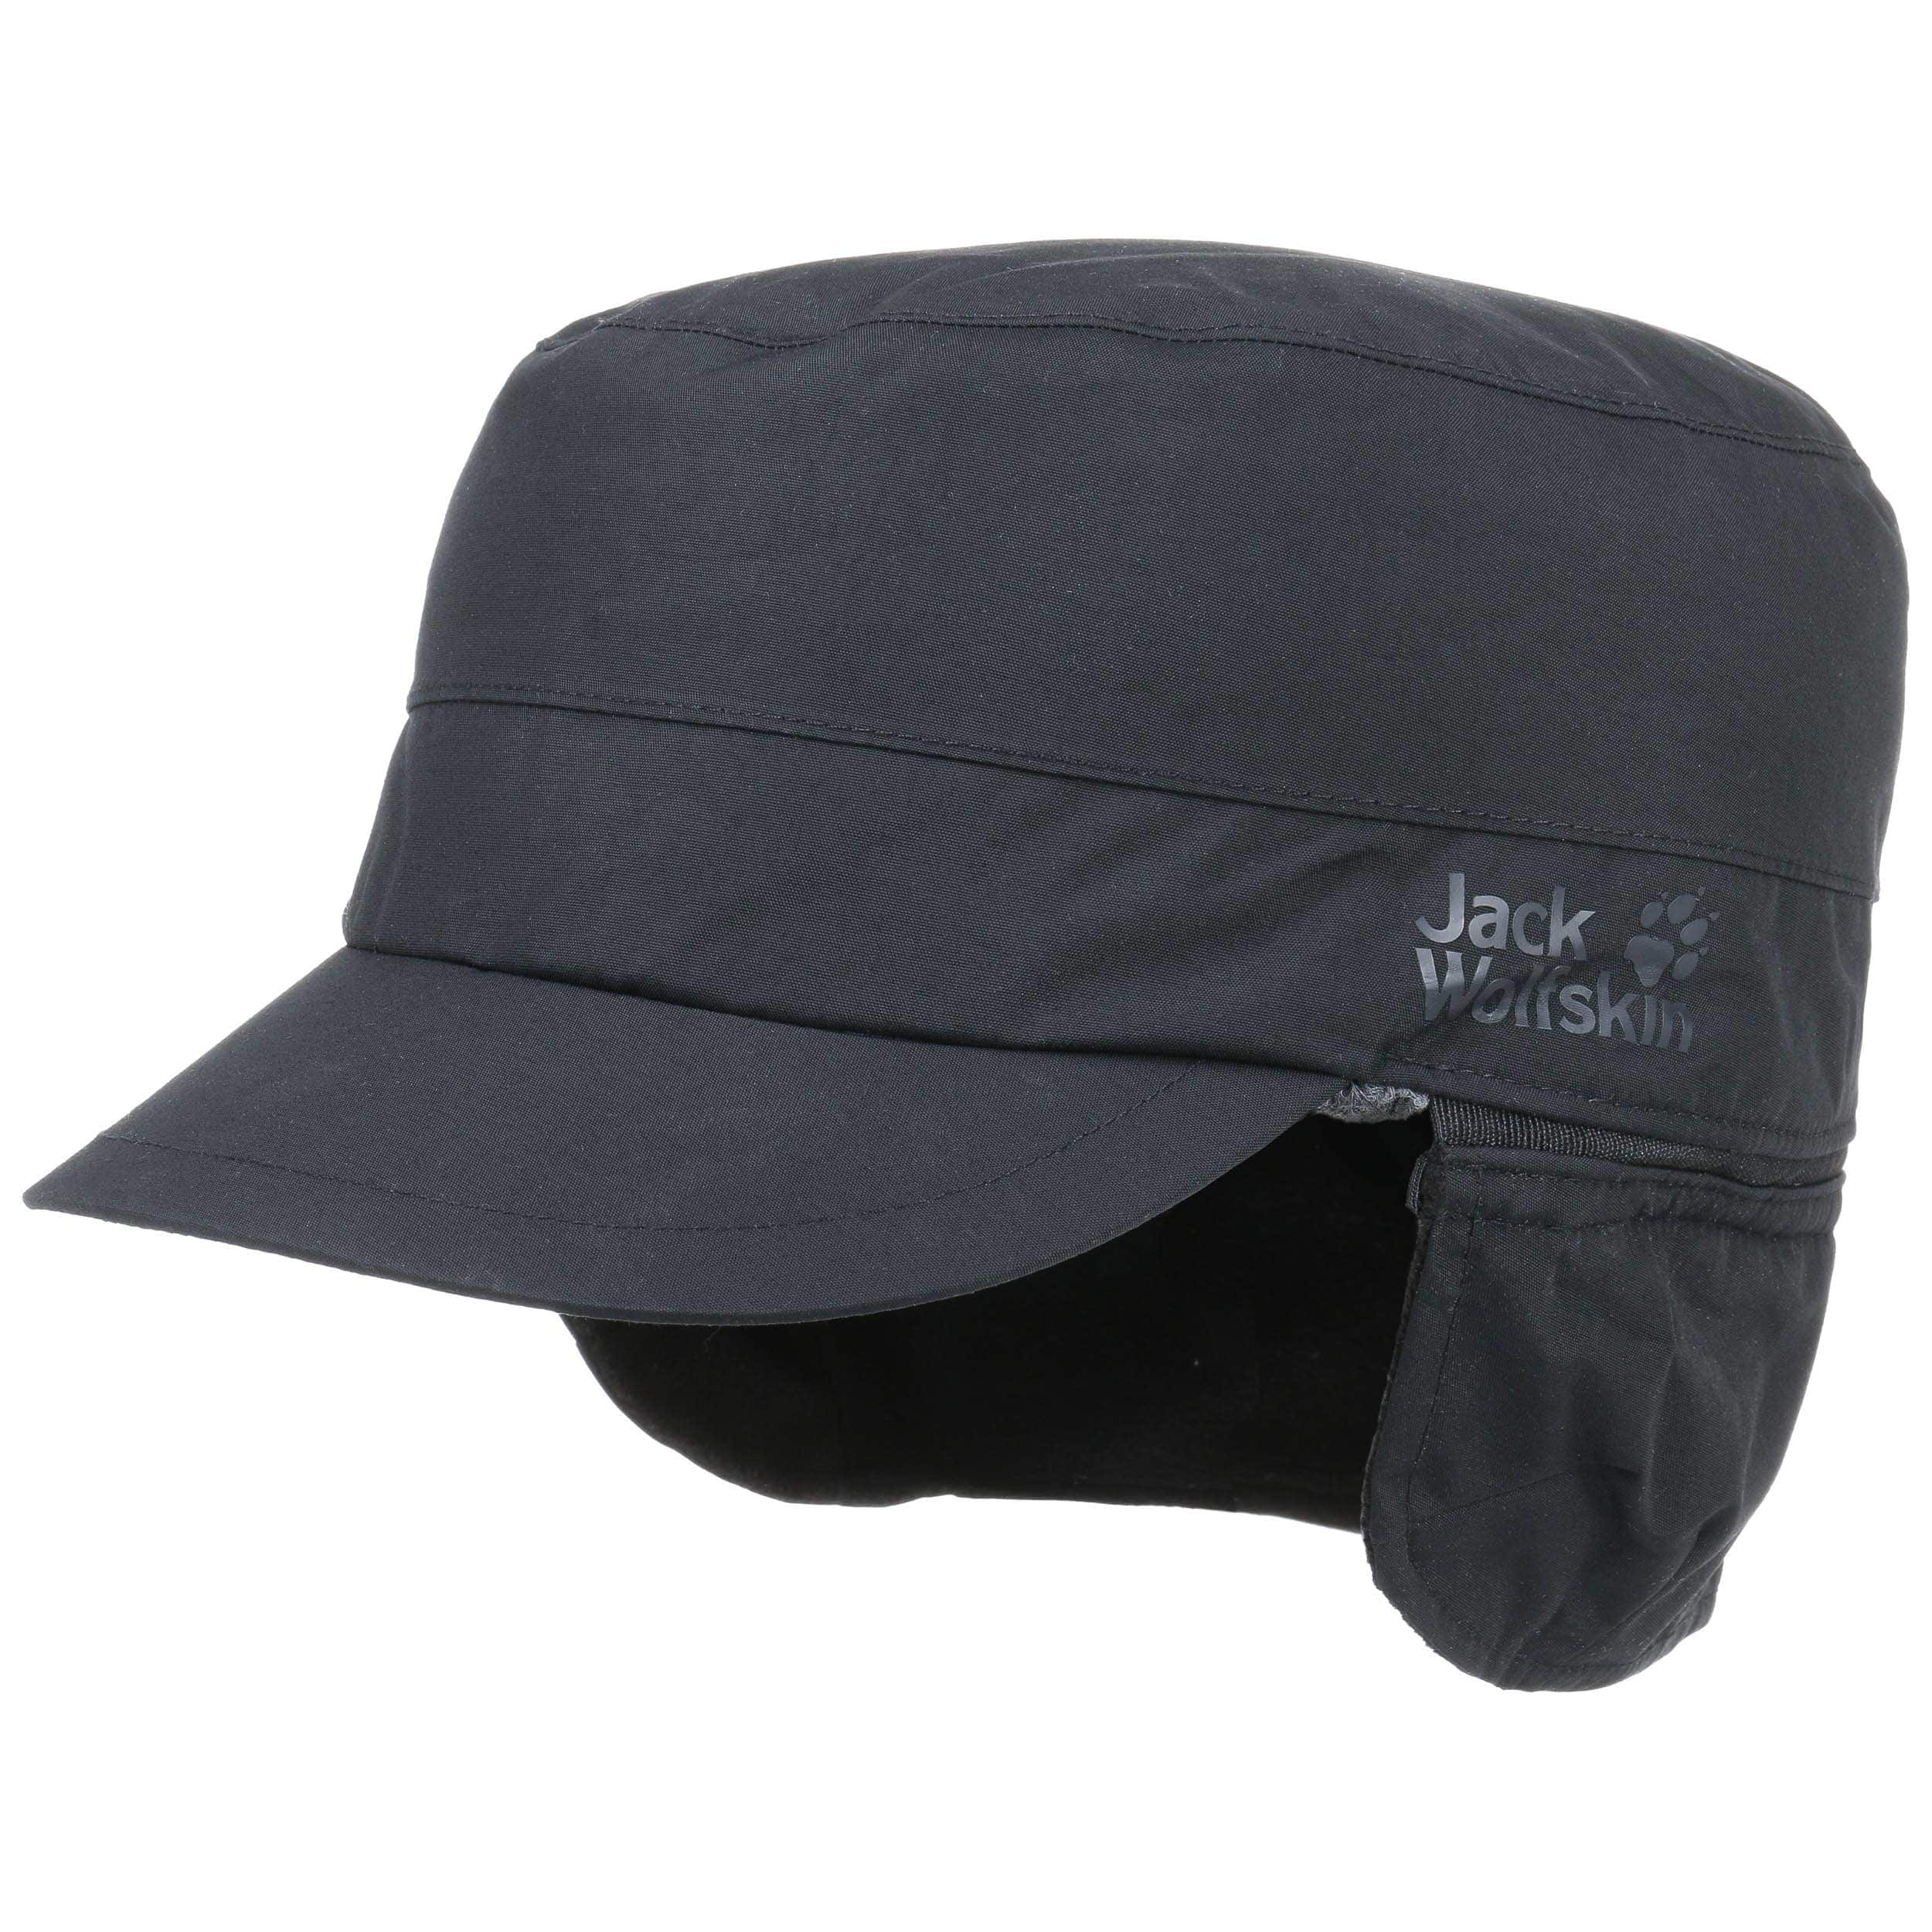 wholesale online factory outlets exclusive range Texapore Calgary Cap by Jack Wolfskin